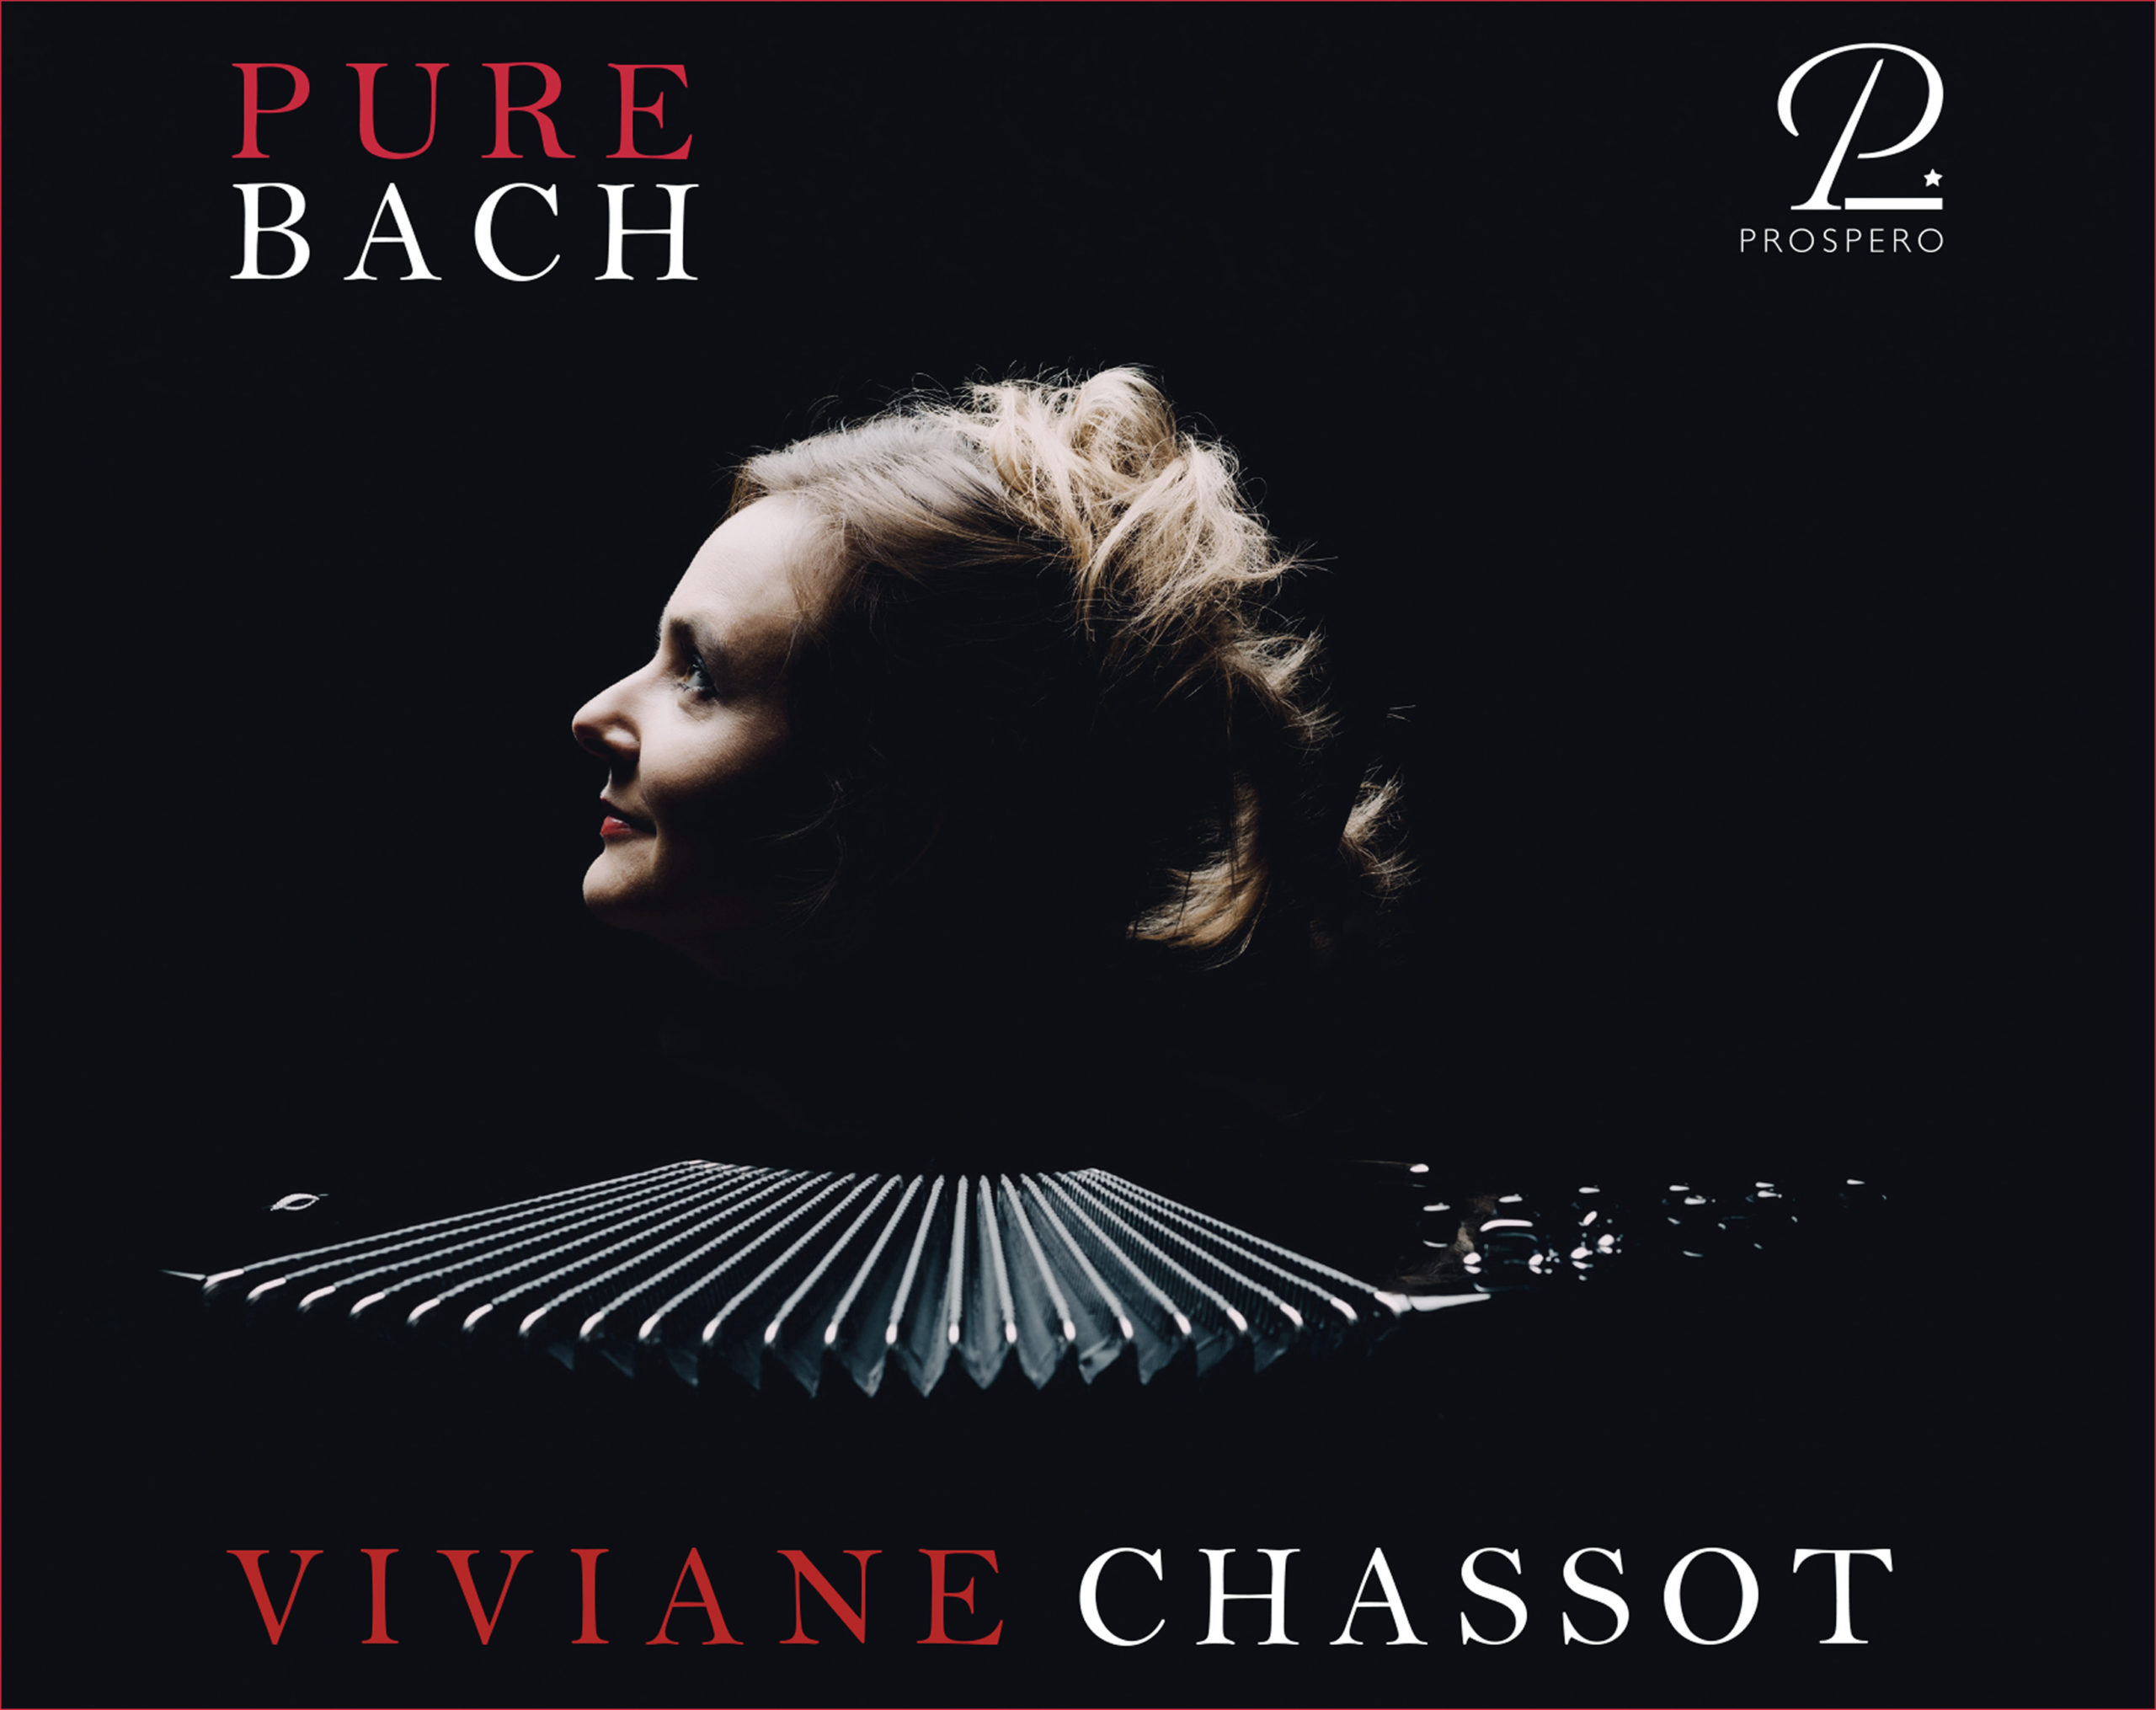 Pure Bach - Cover Art